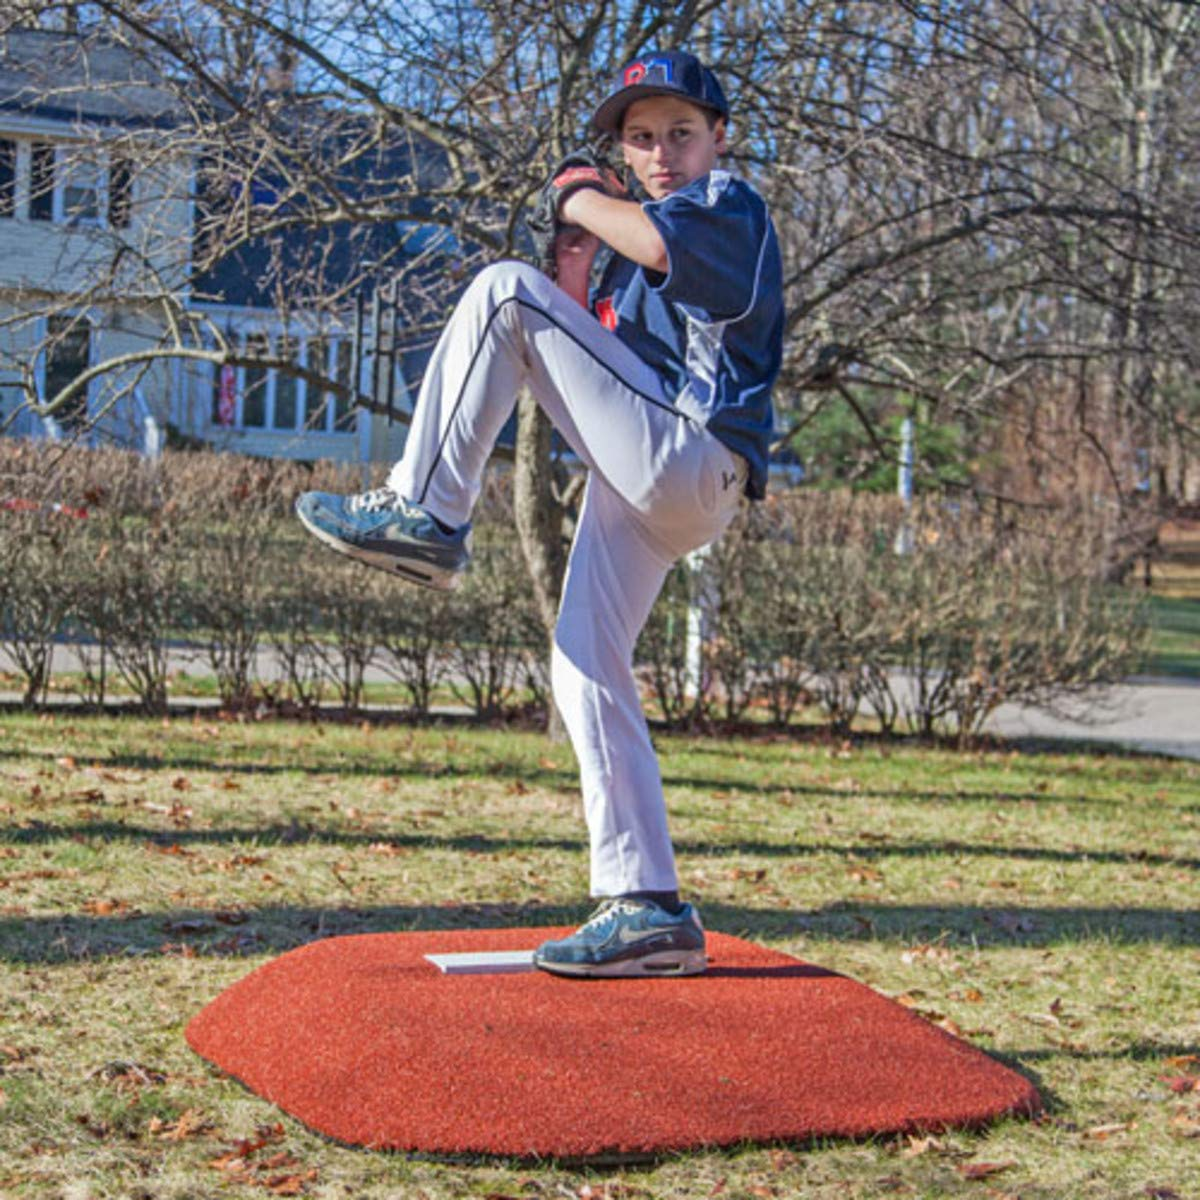 ProMounds 5070 Youth Pitching Mound - Clay Color by ProMounds